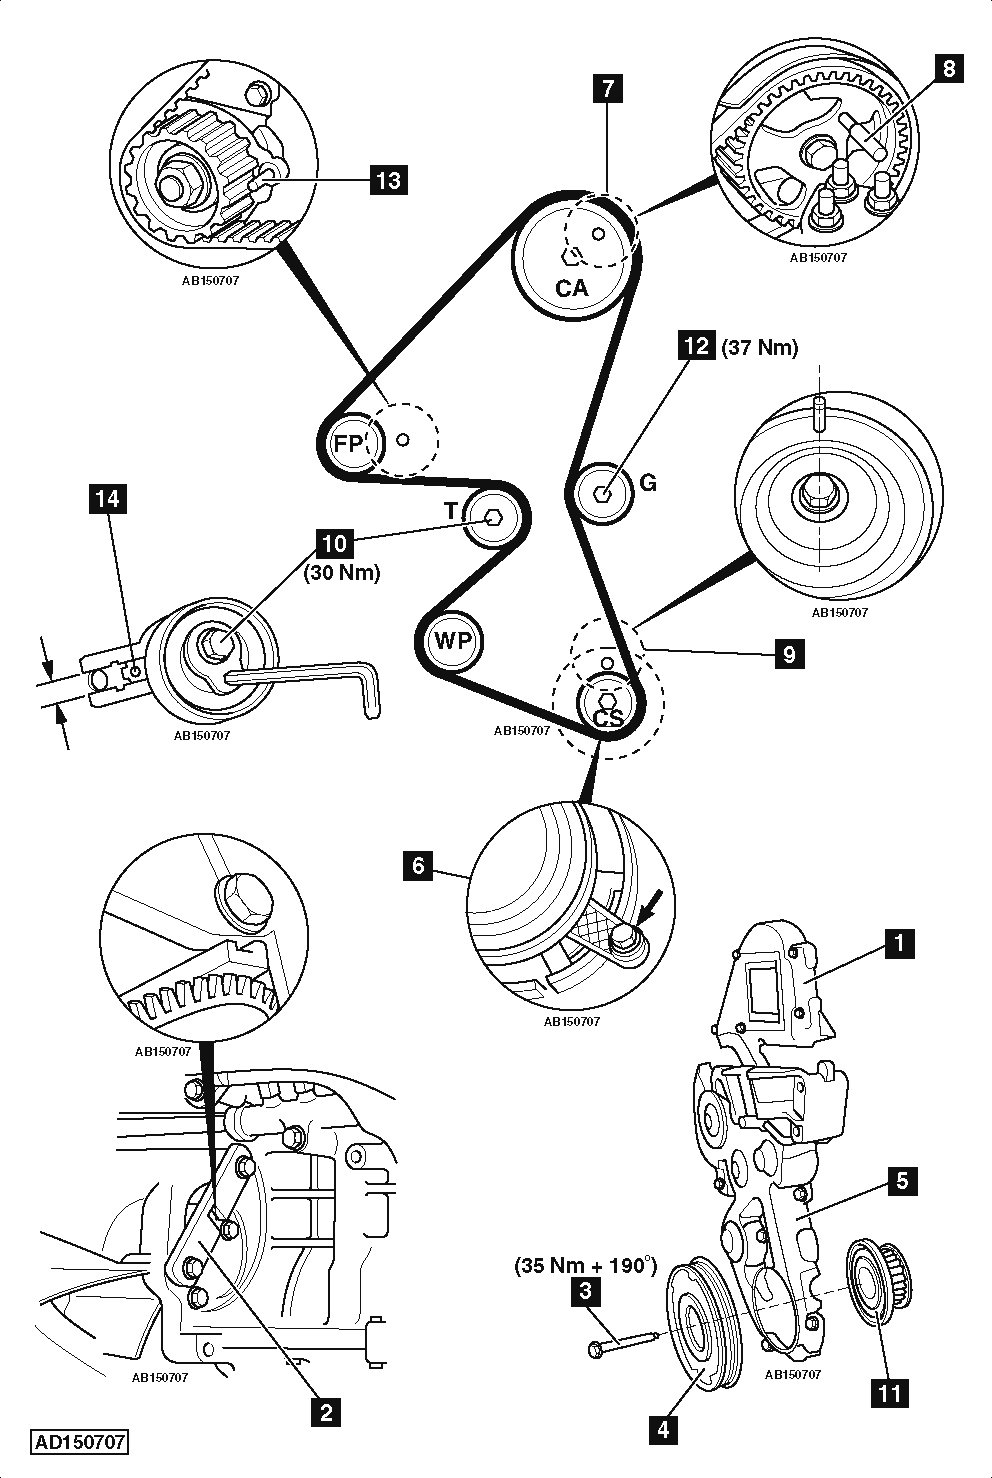 Ford Escort Xr3 Wiring Diagram likewise 3 8 L Chrysler V6 Engine Intake Sensor Location moreover Onewirealternator 1 Wire Alternator Wiring Diagram additionally Seat Altea Wiring Diagram in addition 03 Cadillac Cts Oil Filter Location. on ford mondeo wiring diagram free